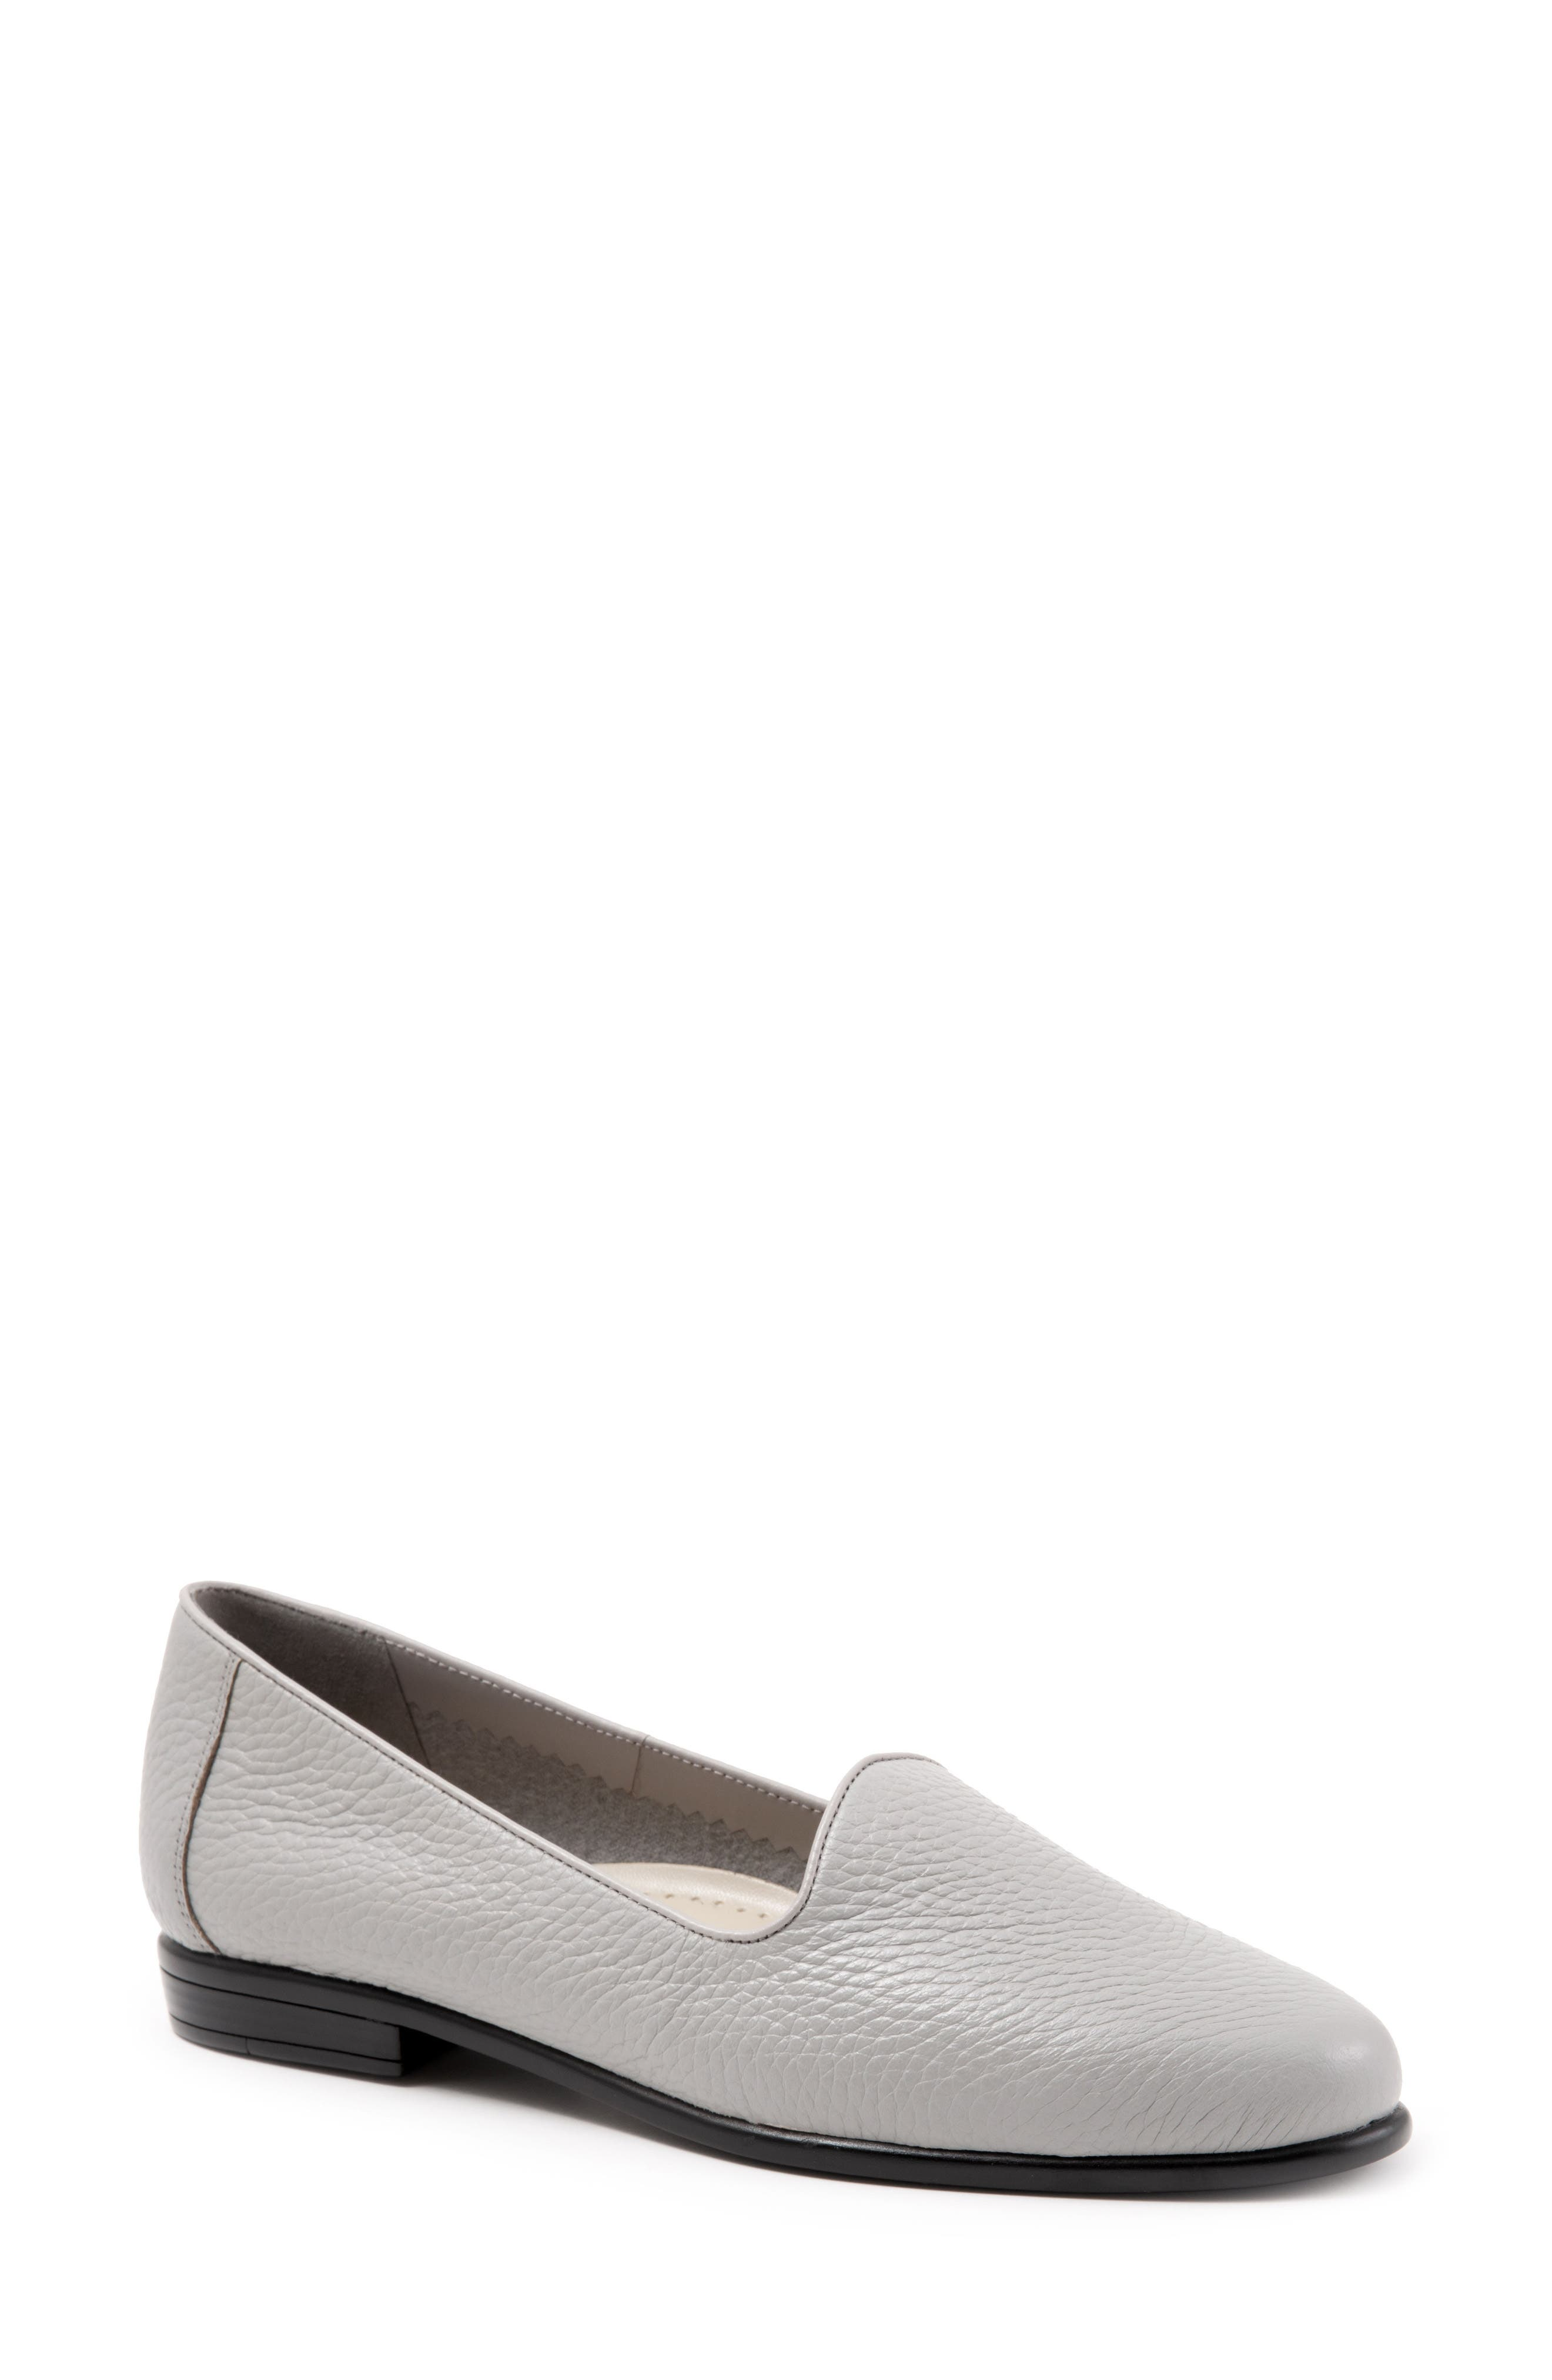 TROTTERS Liz Loafer, Main, color, GREY LEATHER